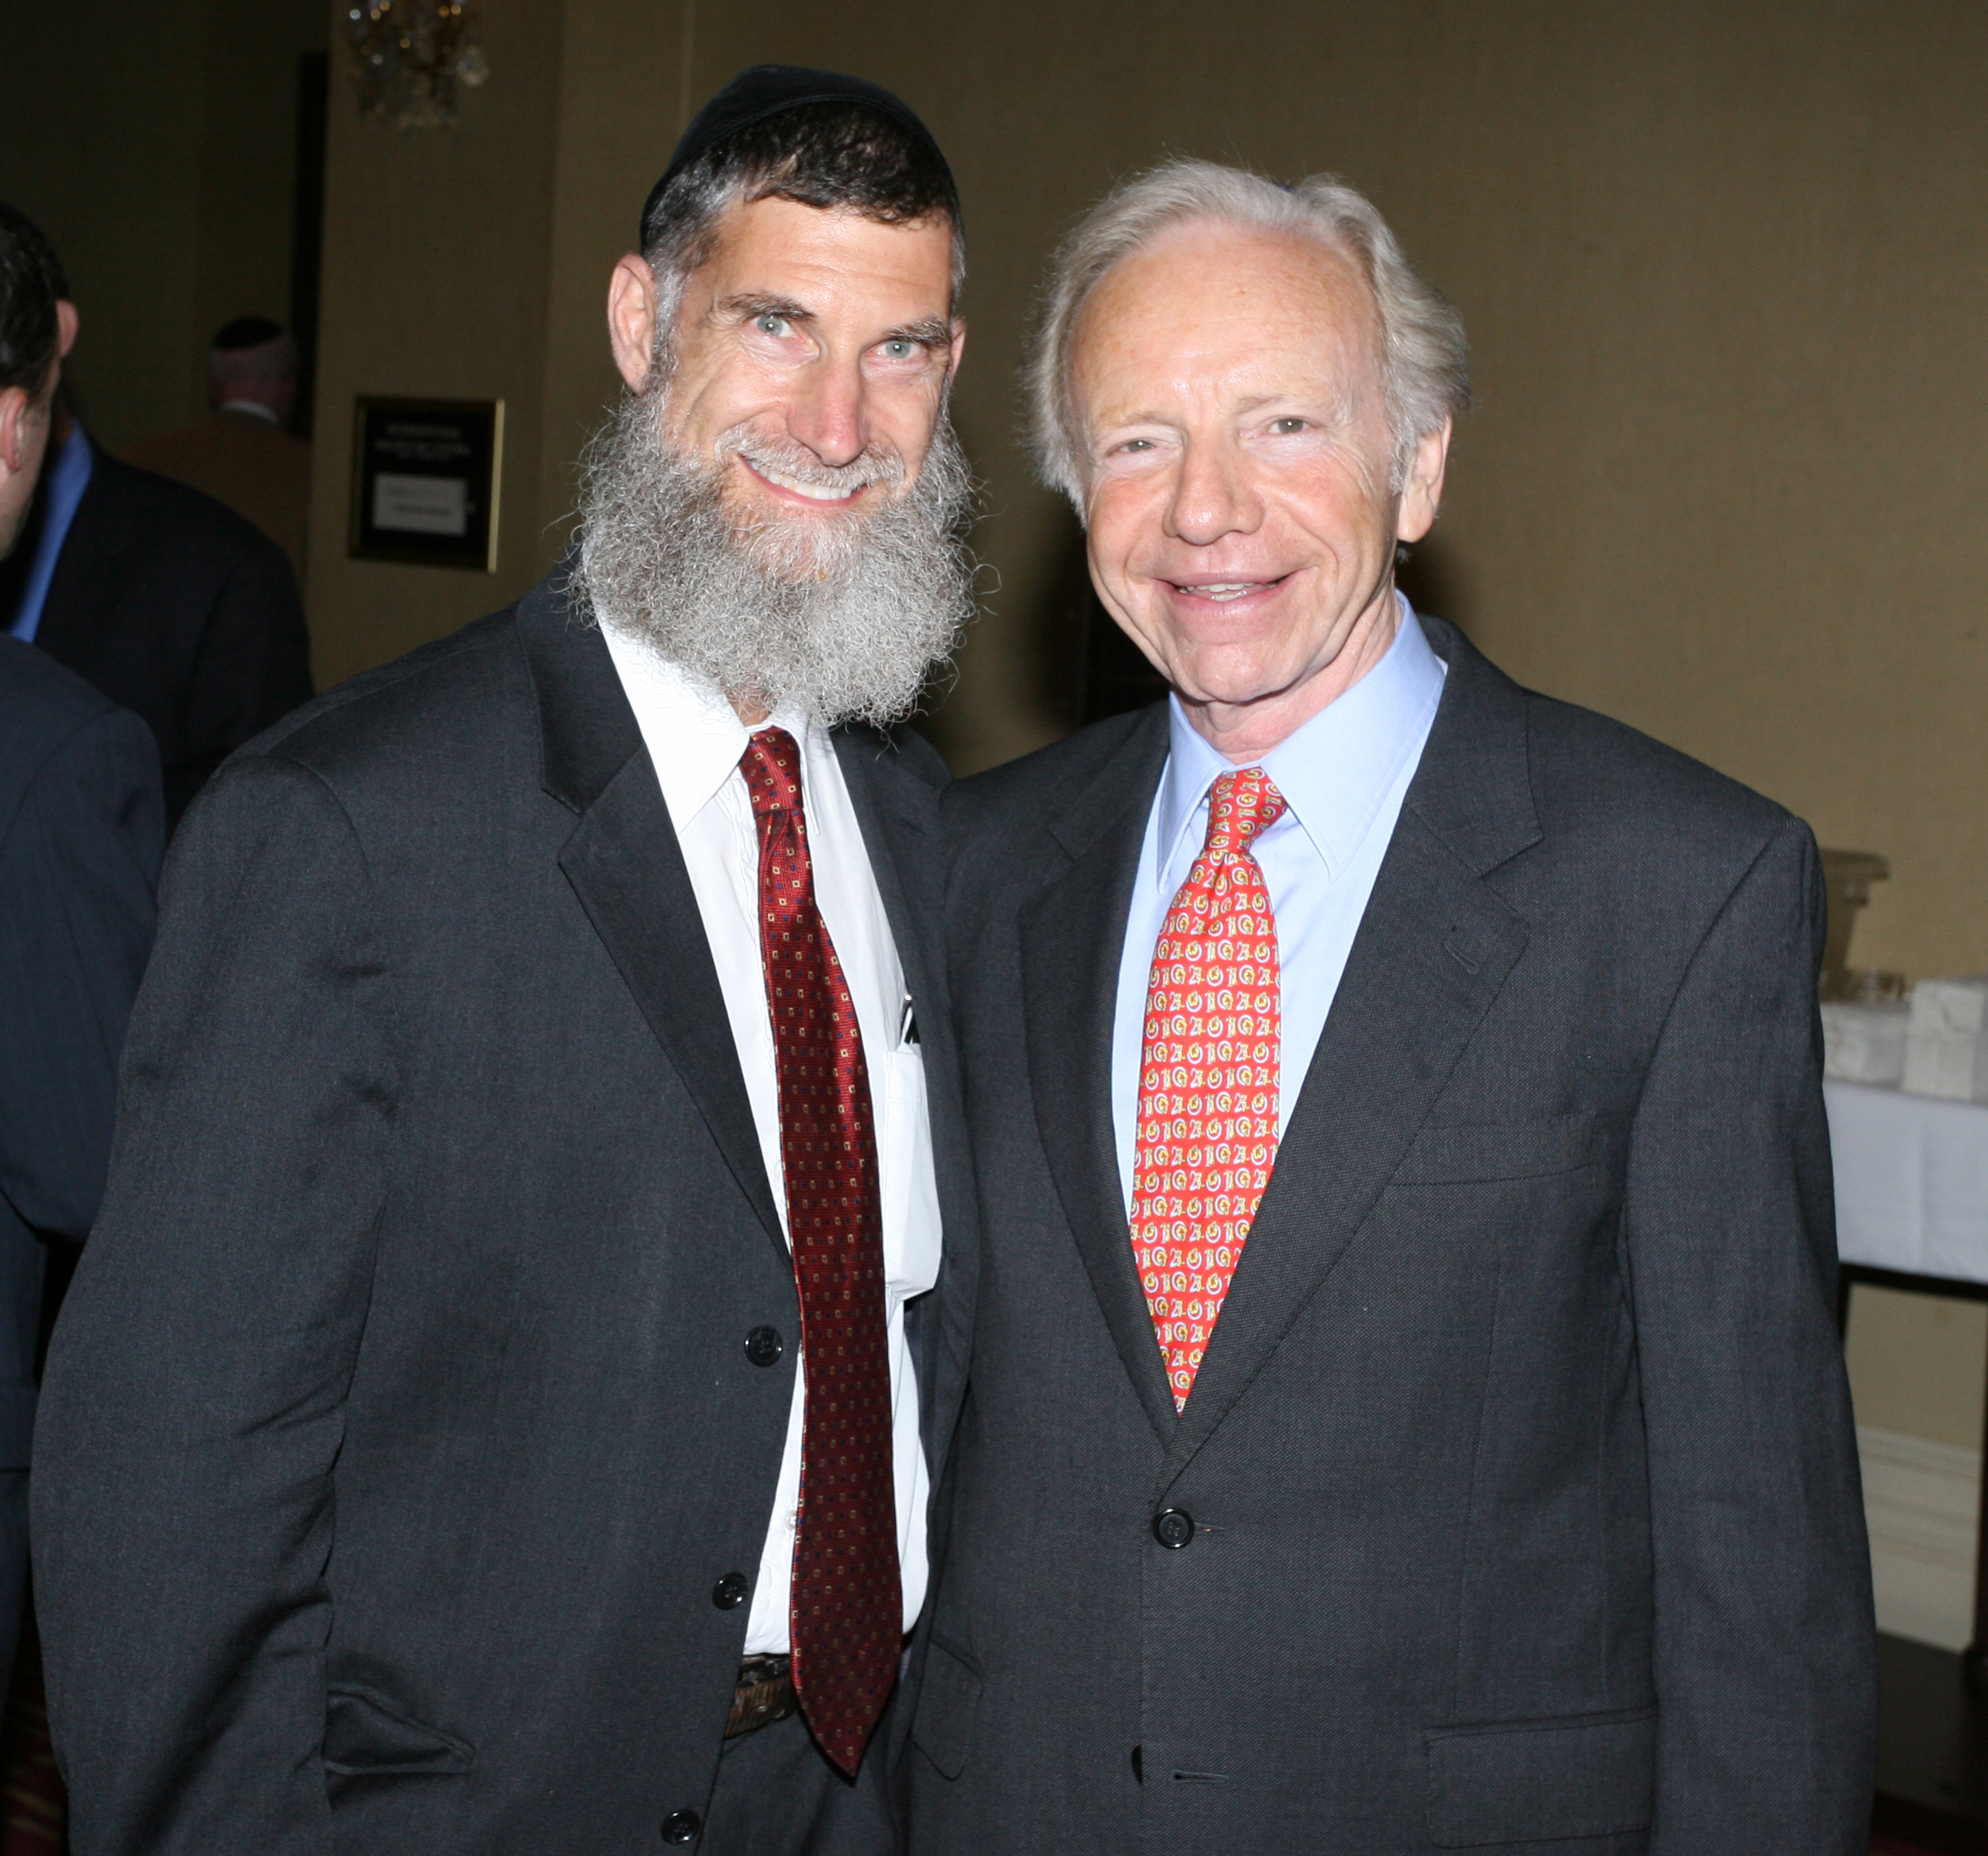 With Senator Joseph Lieberman